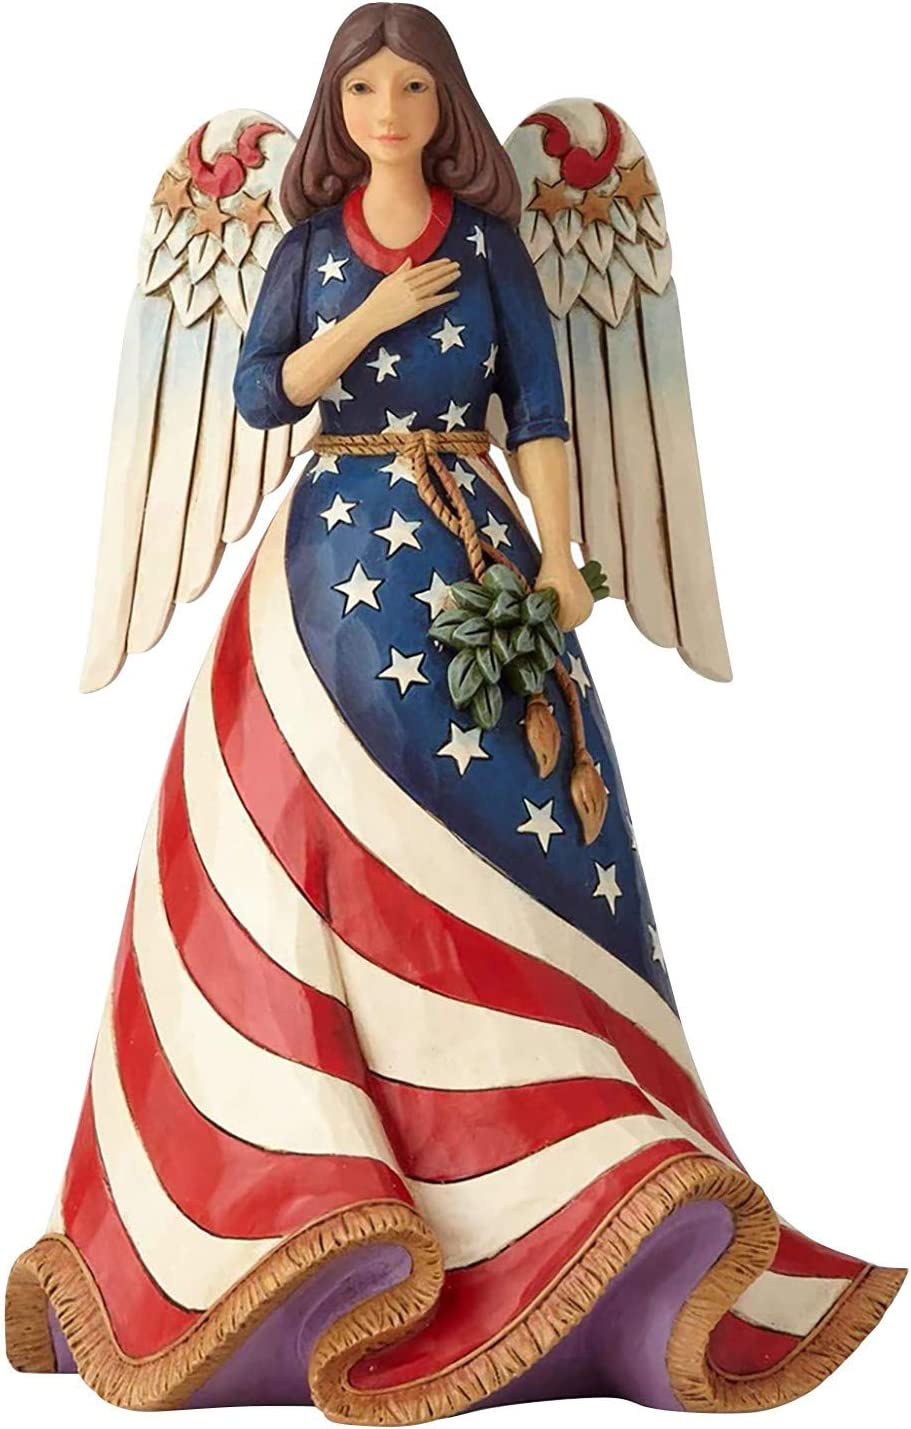 Winnerlink Patriotic Denver Mall Angel discount Figurine - Day Independence An Female